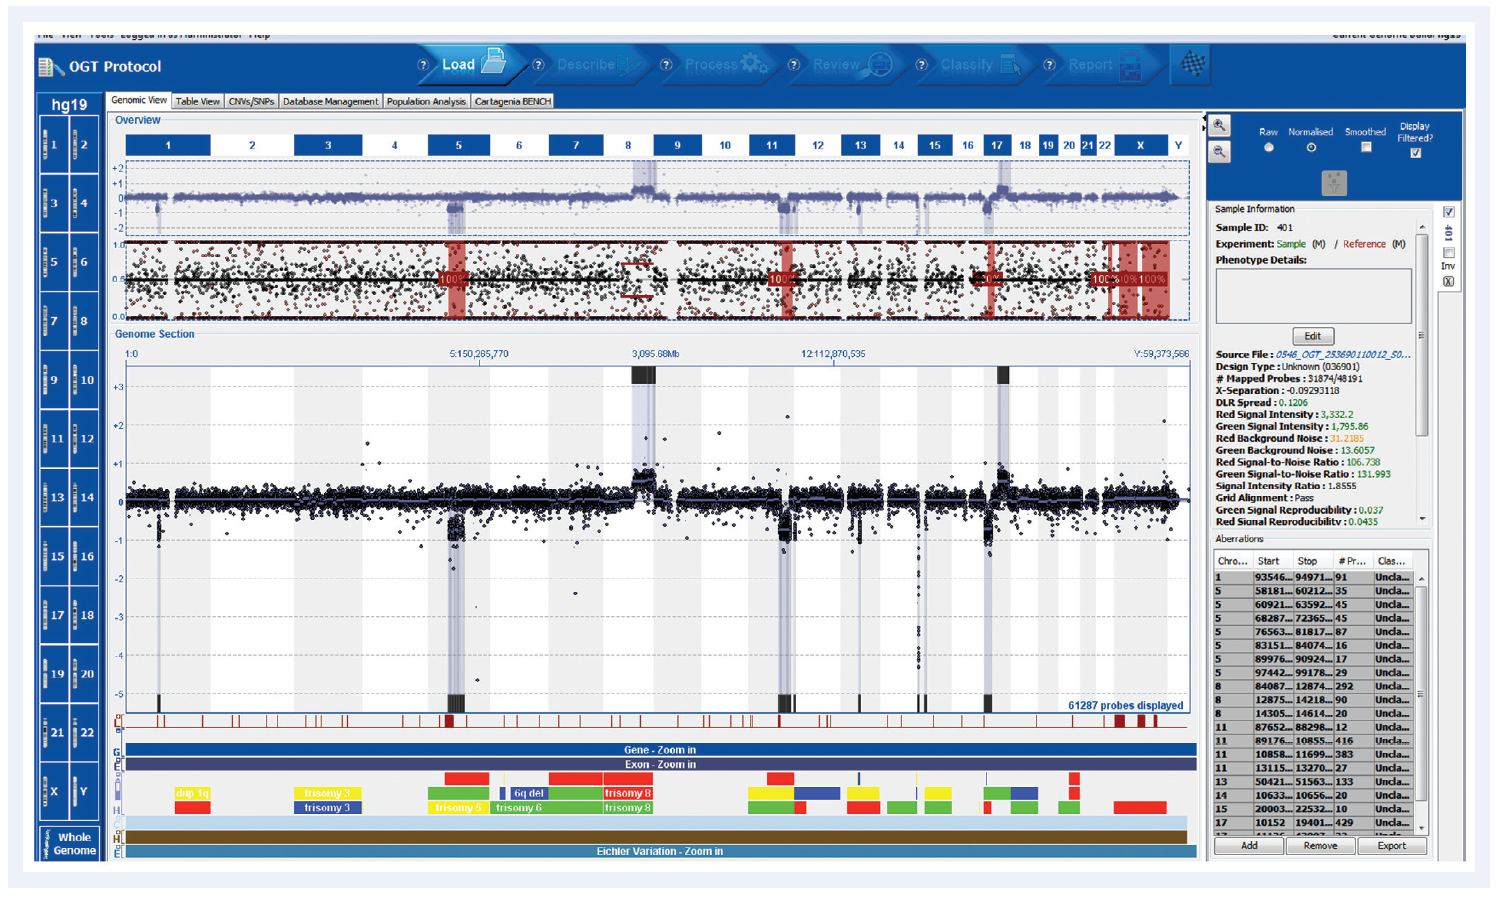 Figure 2: Automated aberration detection with CytoSure analysis software, showing clear detection of chromosomal abnormalities.